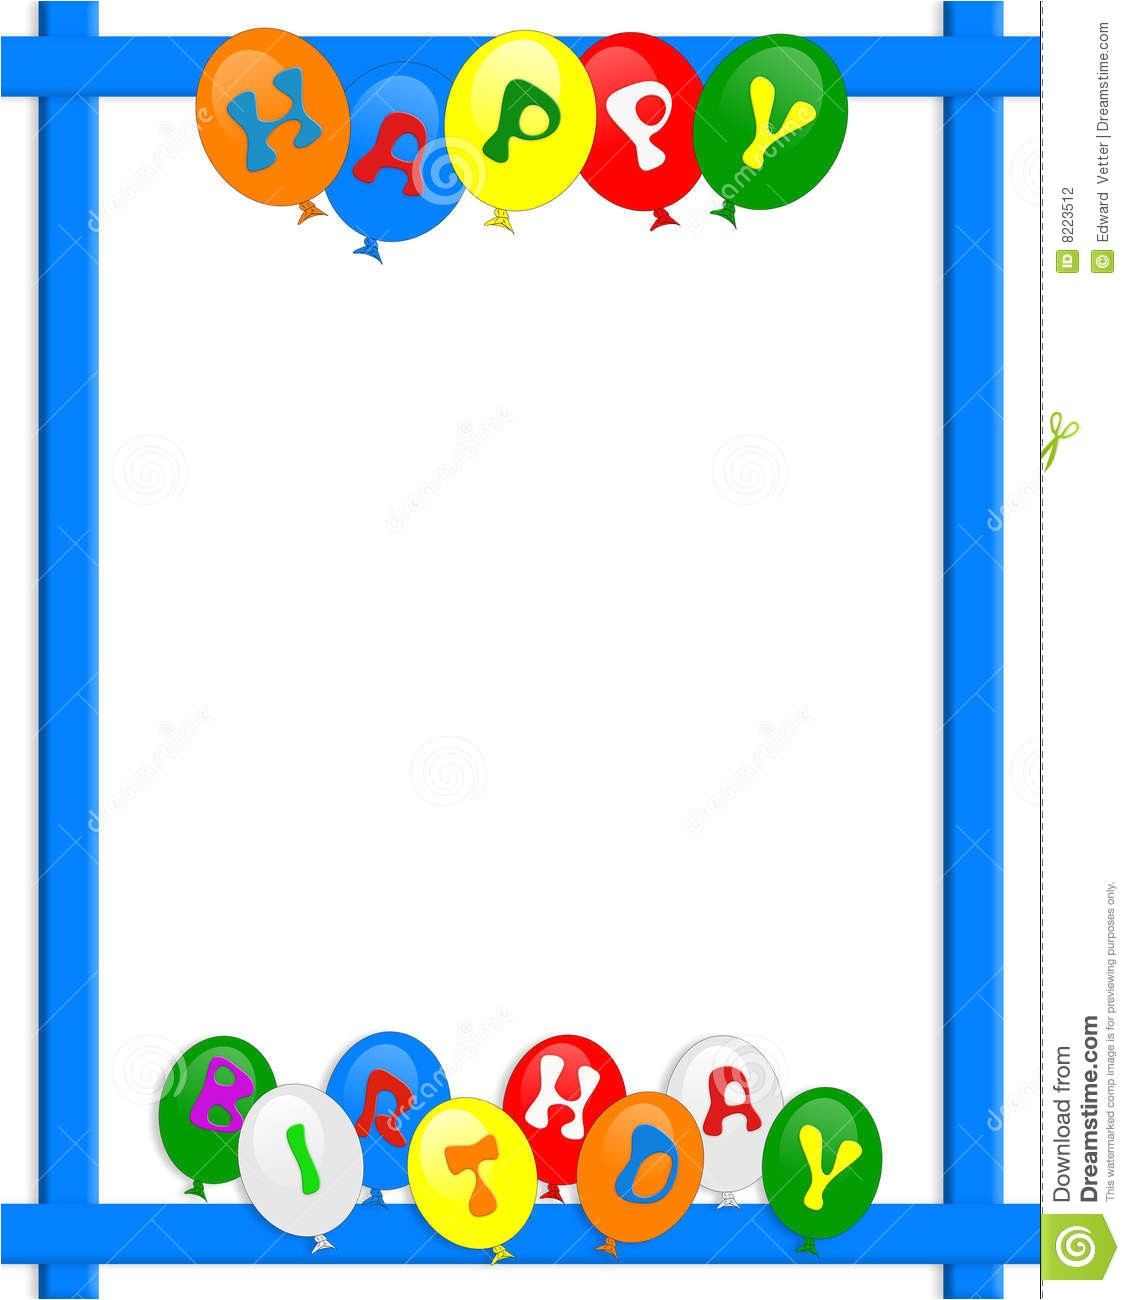 stock photography happy birthday balloons border frame image